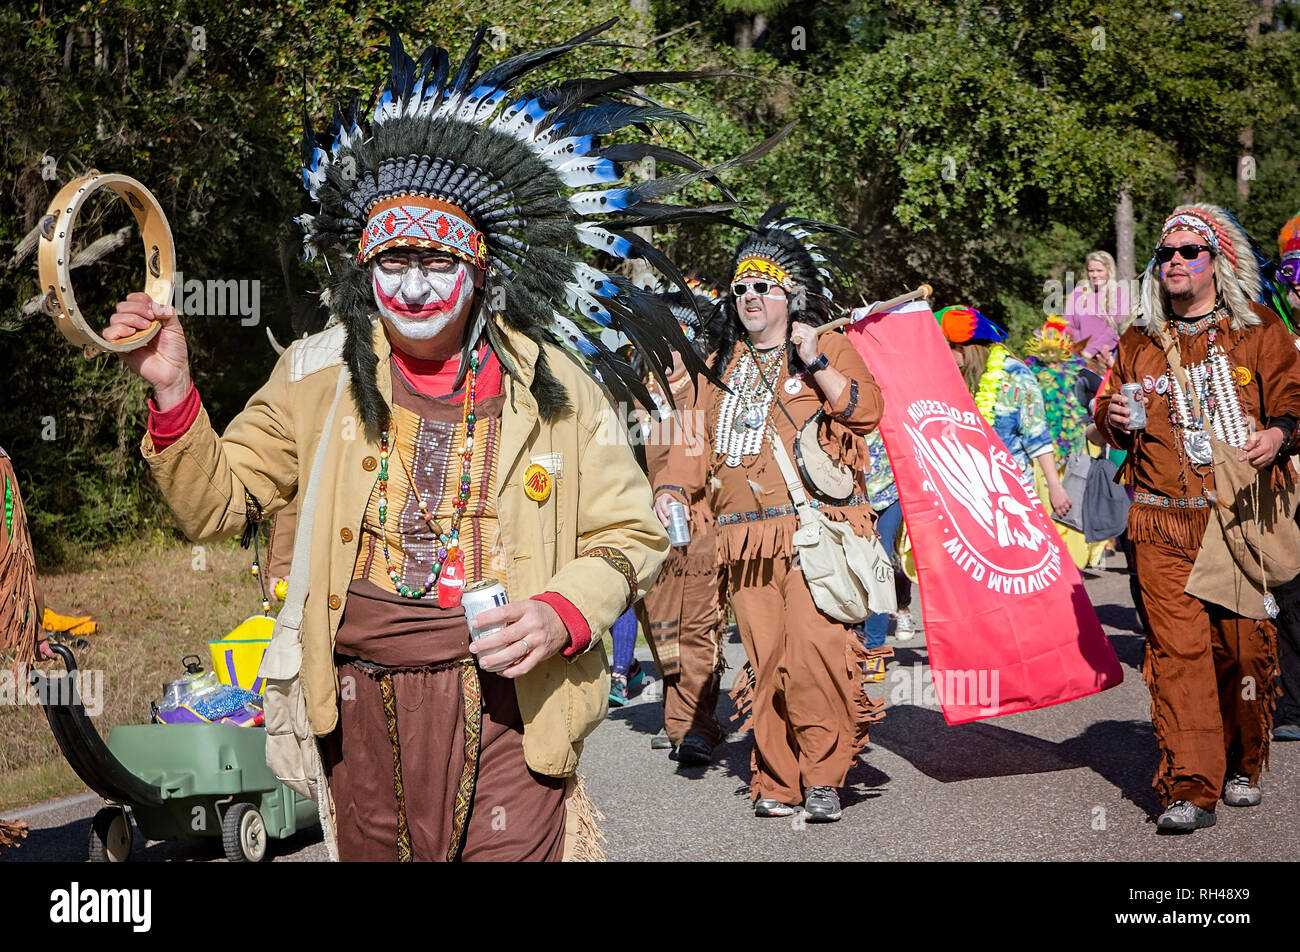 A costumed group participates in Dauphin Island's first People's Parade during Mardi Gras, Feb. 4, 2017, in Dauphin Island, Alabama. - Stock Image